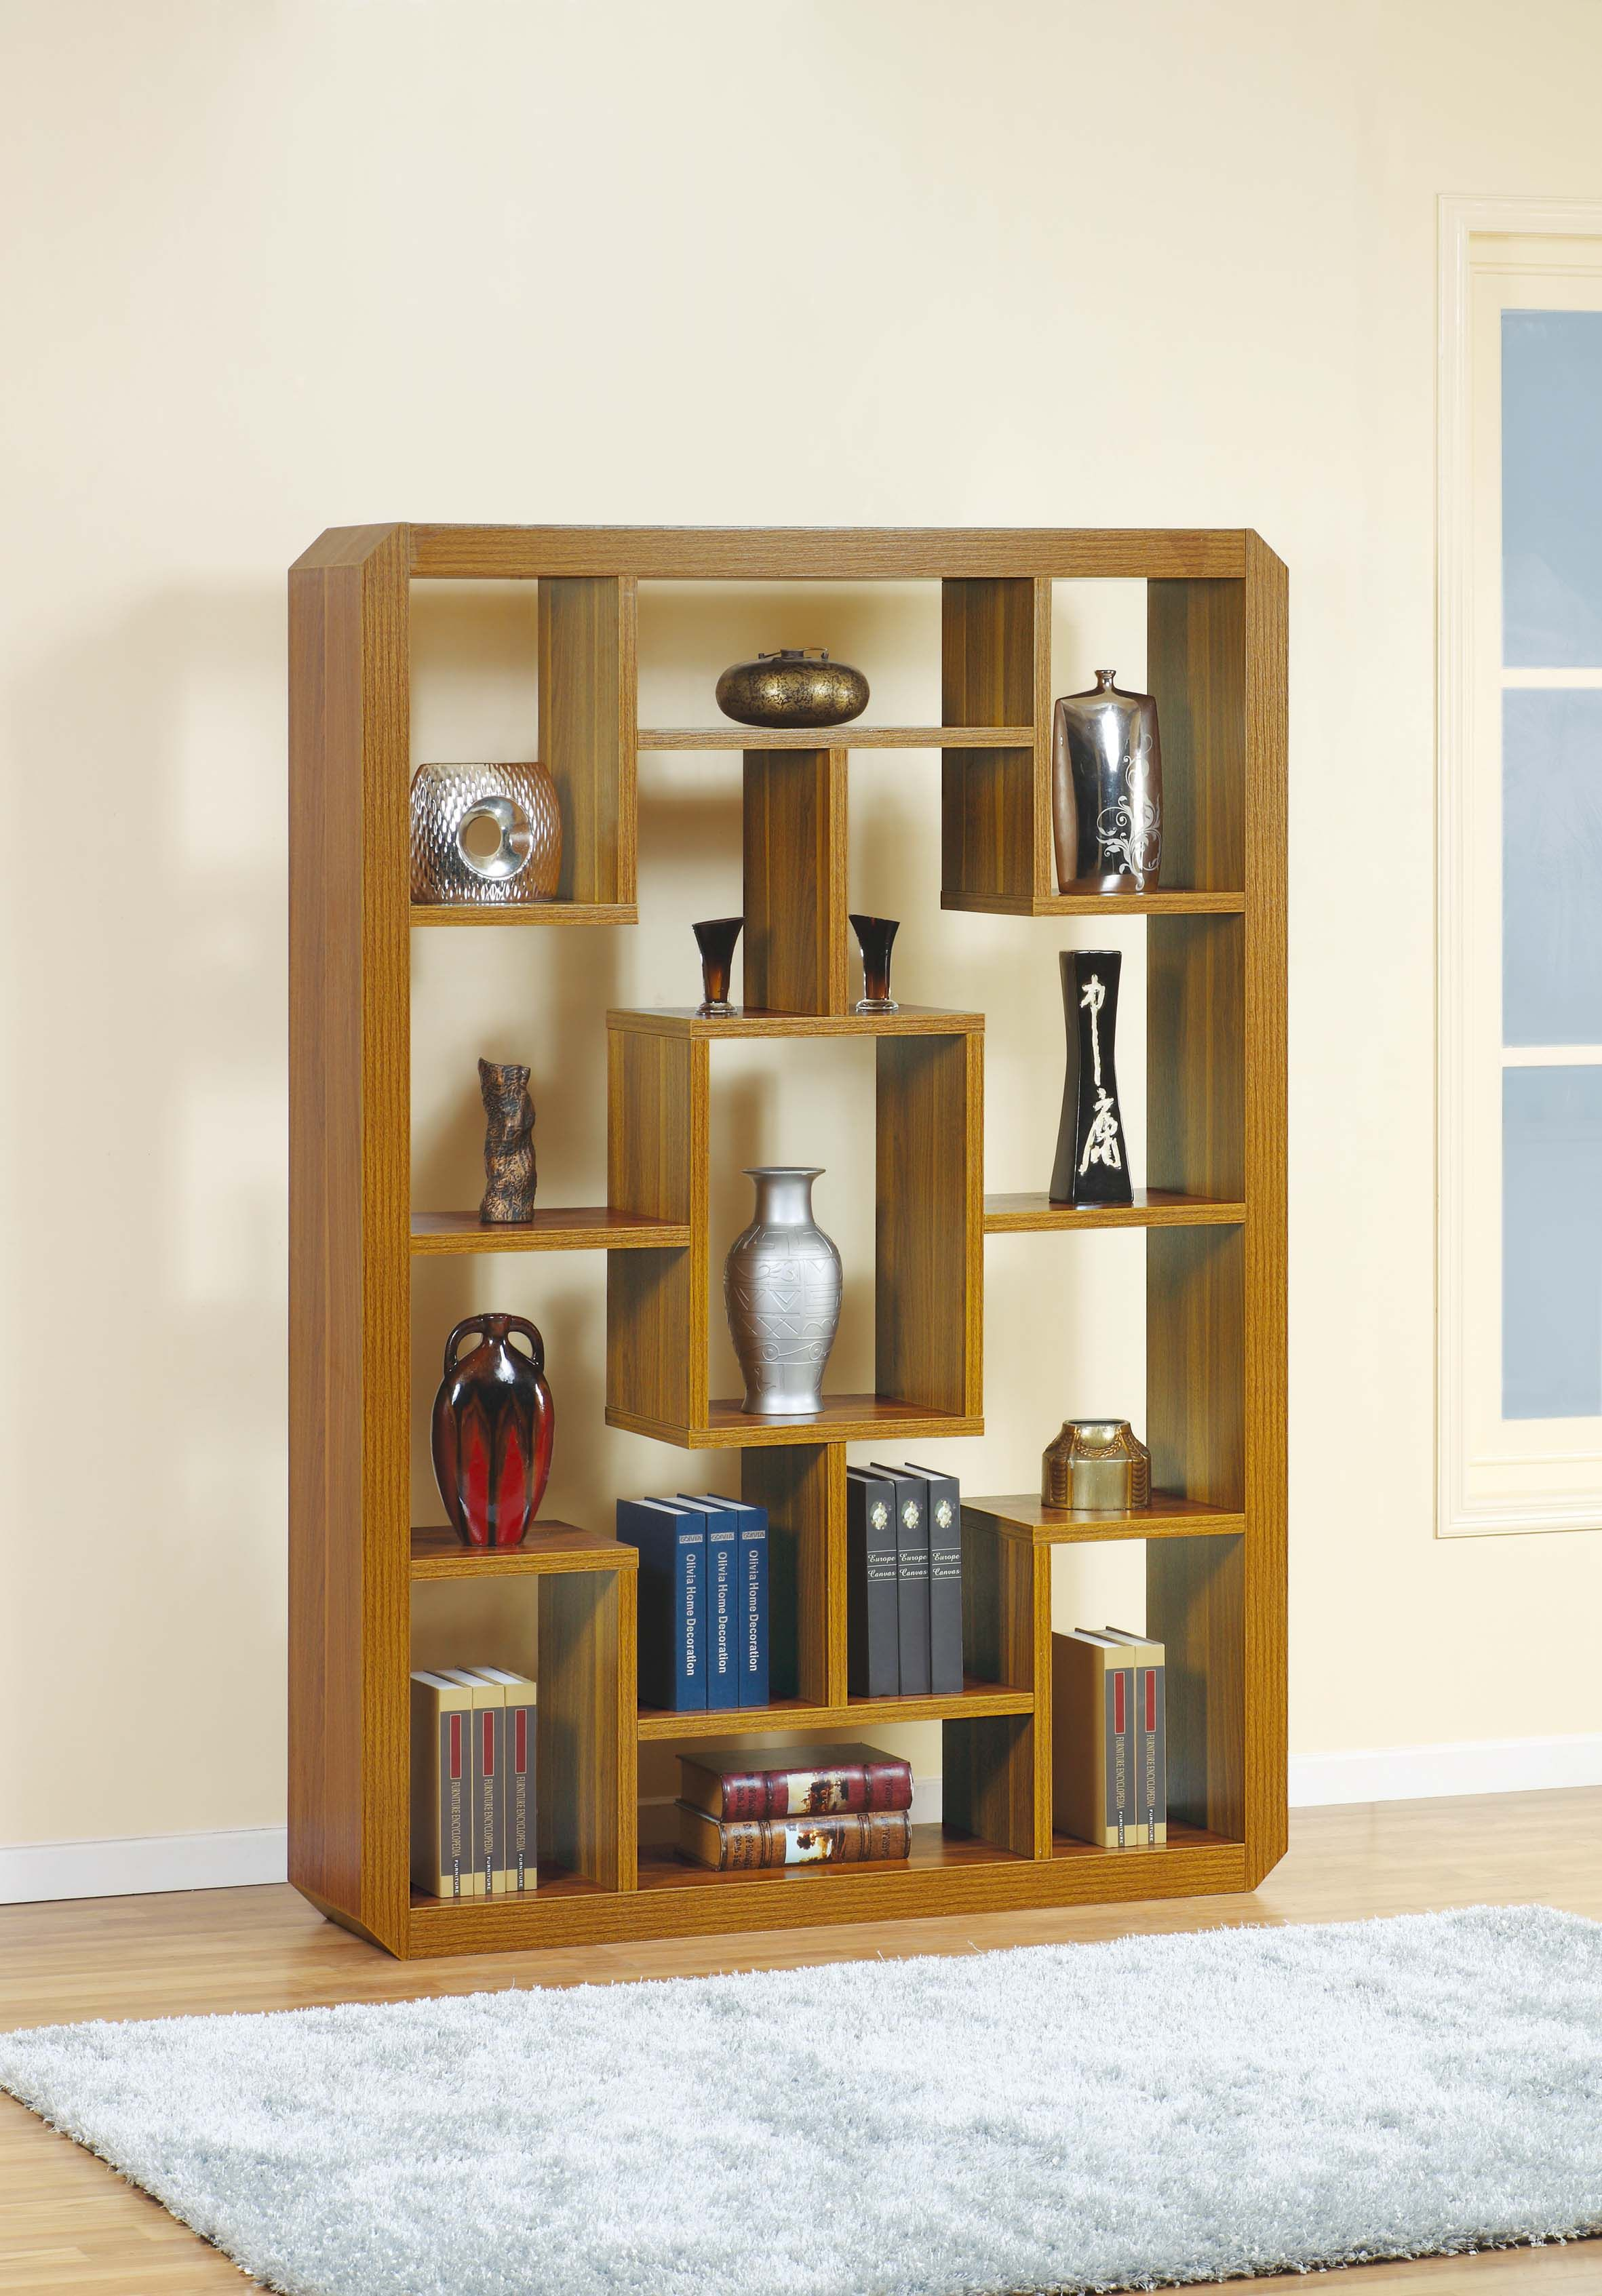 Id Usa Furniture Distributor #13630 Is A Bookcase, Display Cabinet,